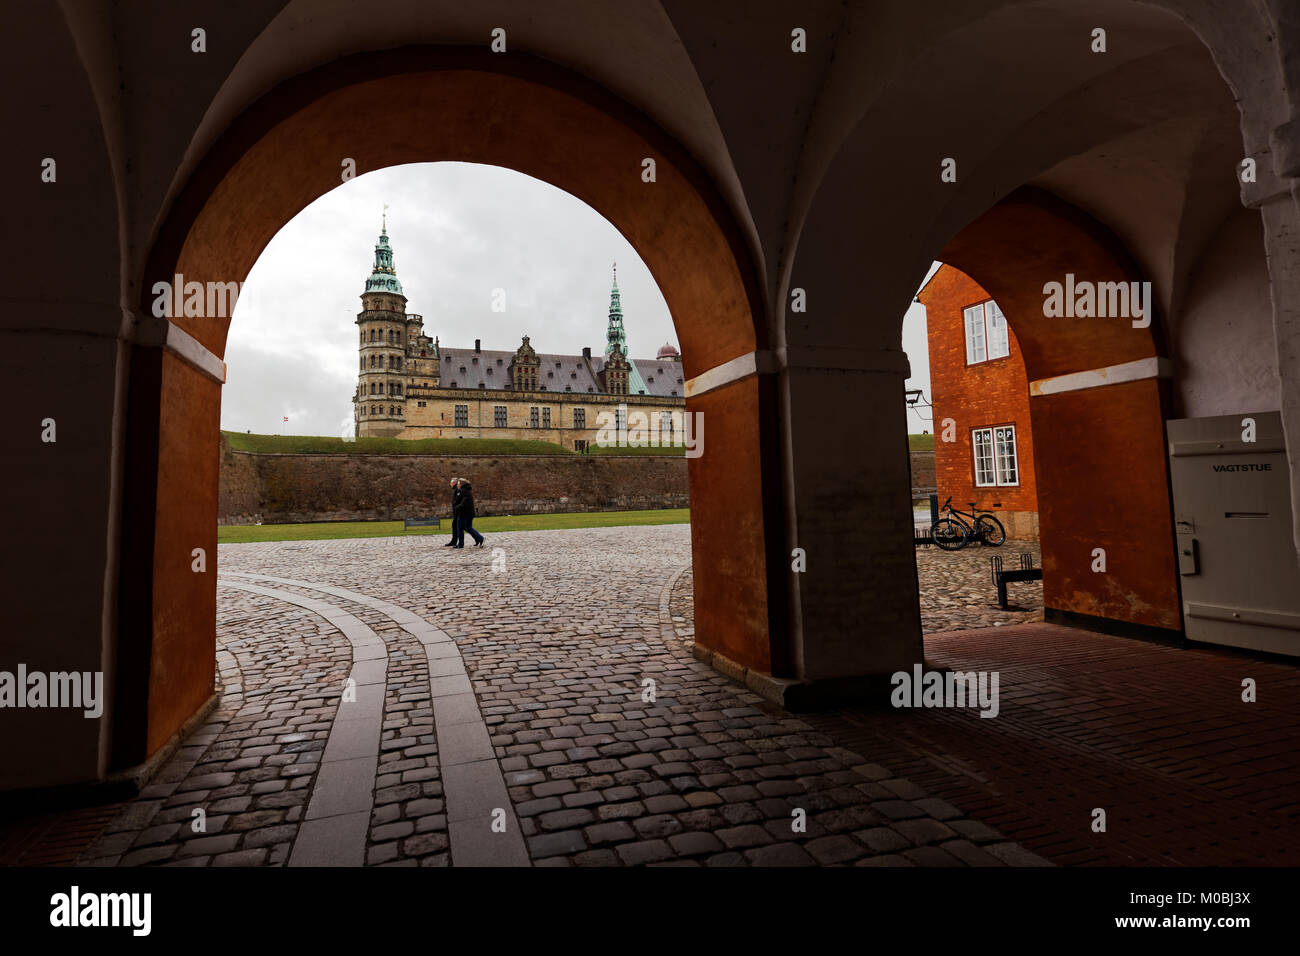 Helsingor, Denmark - November 6, 2016: Tourists in Kronborg castle in an autumn day. Since 2000, the castle is listed - Stock Image